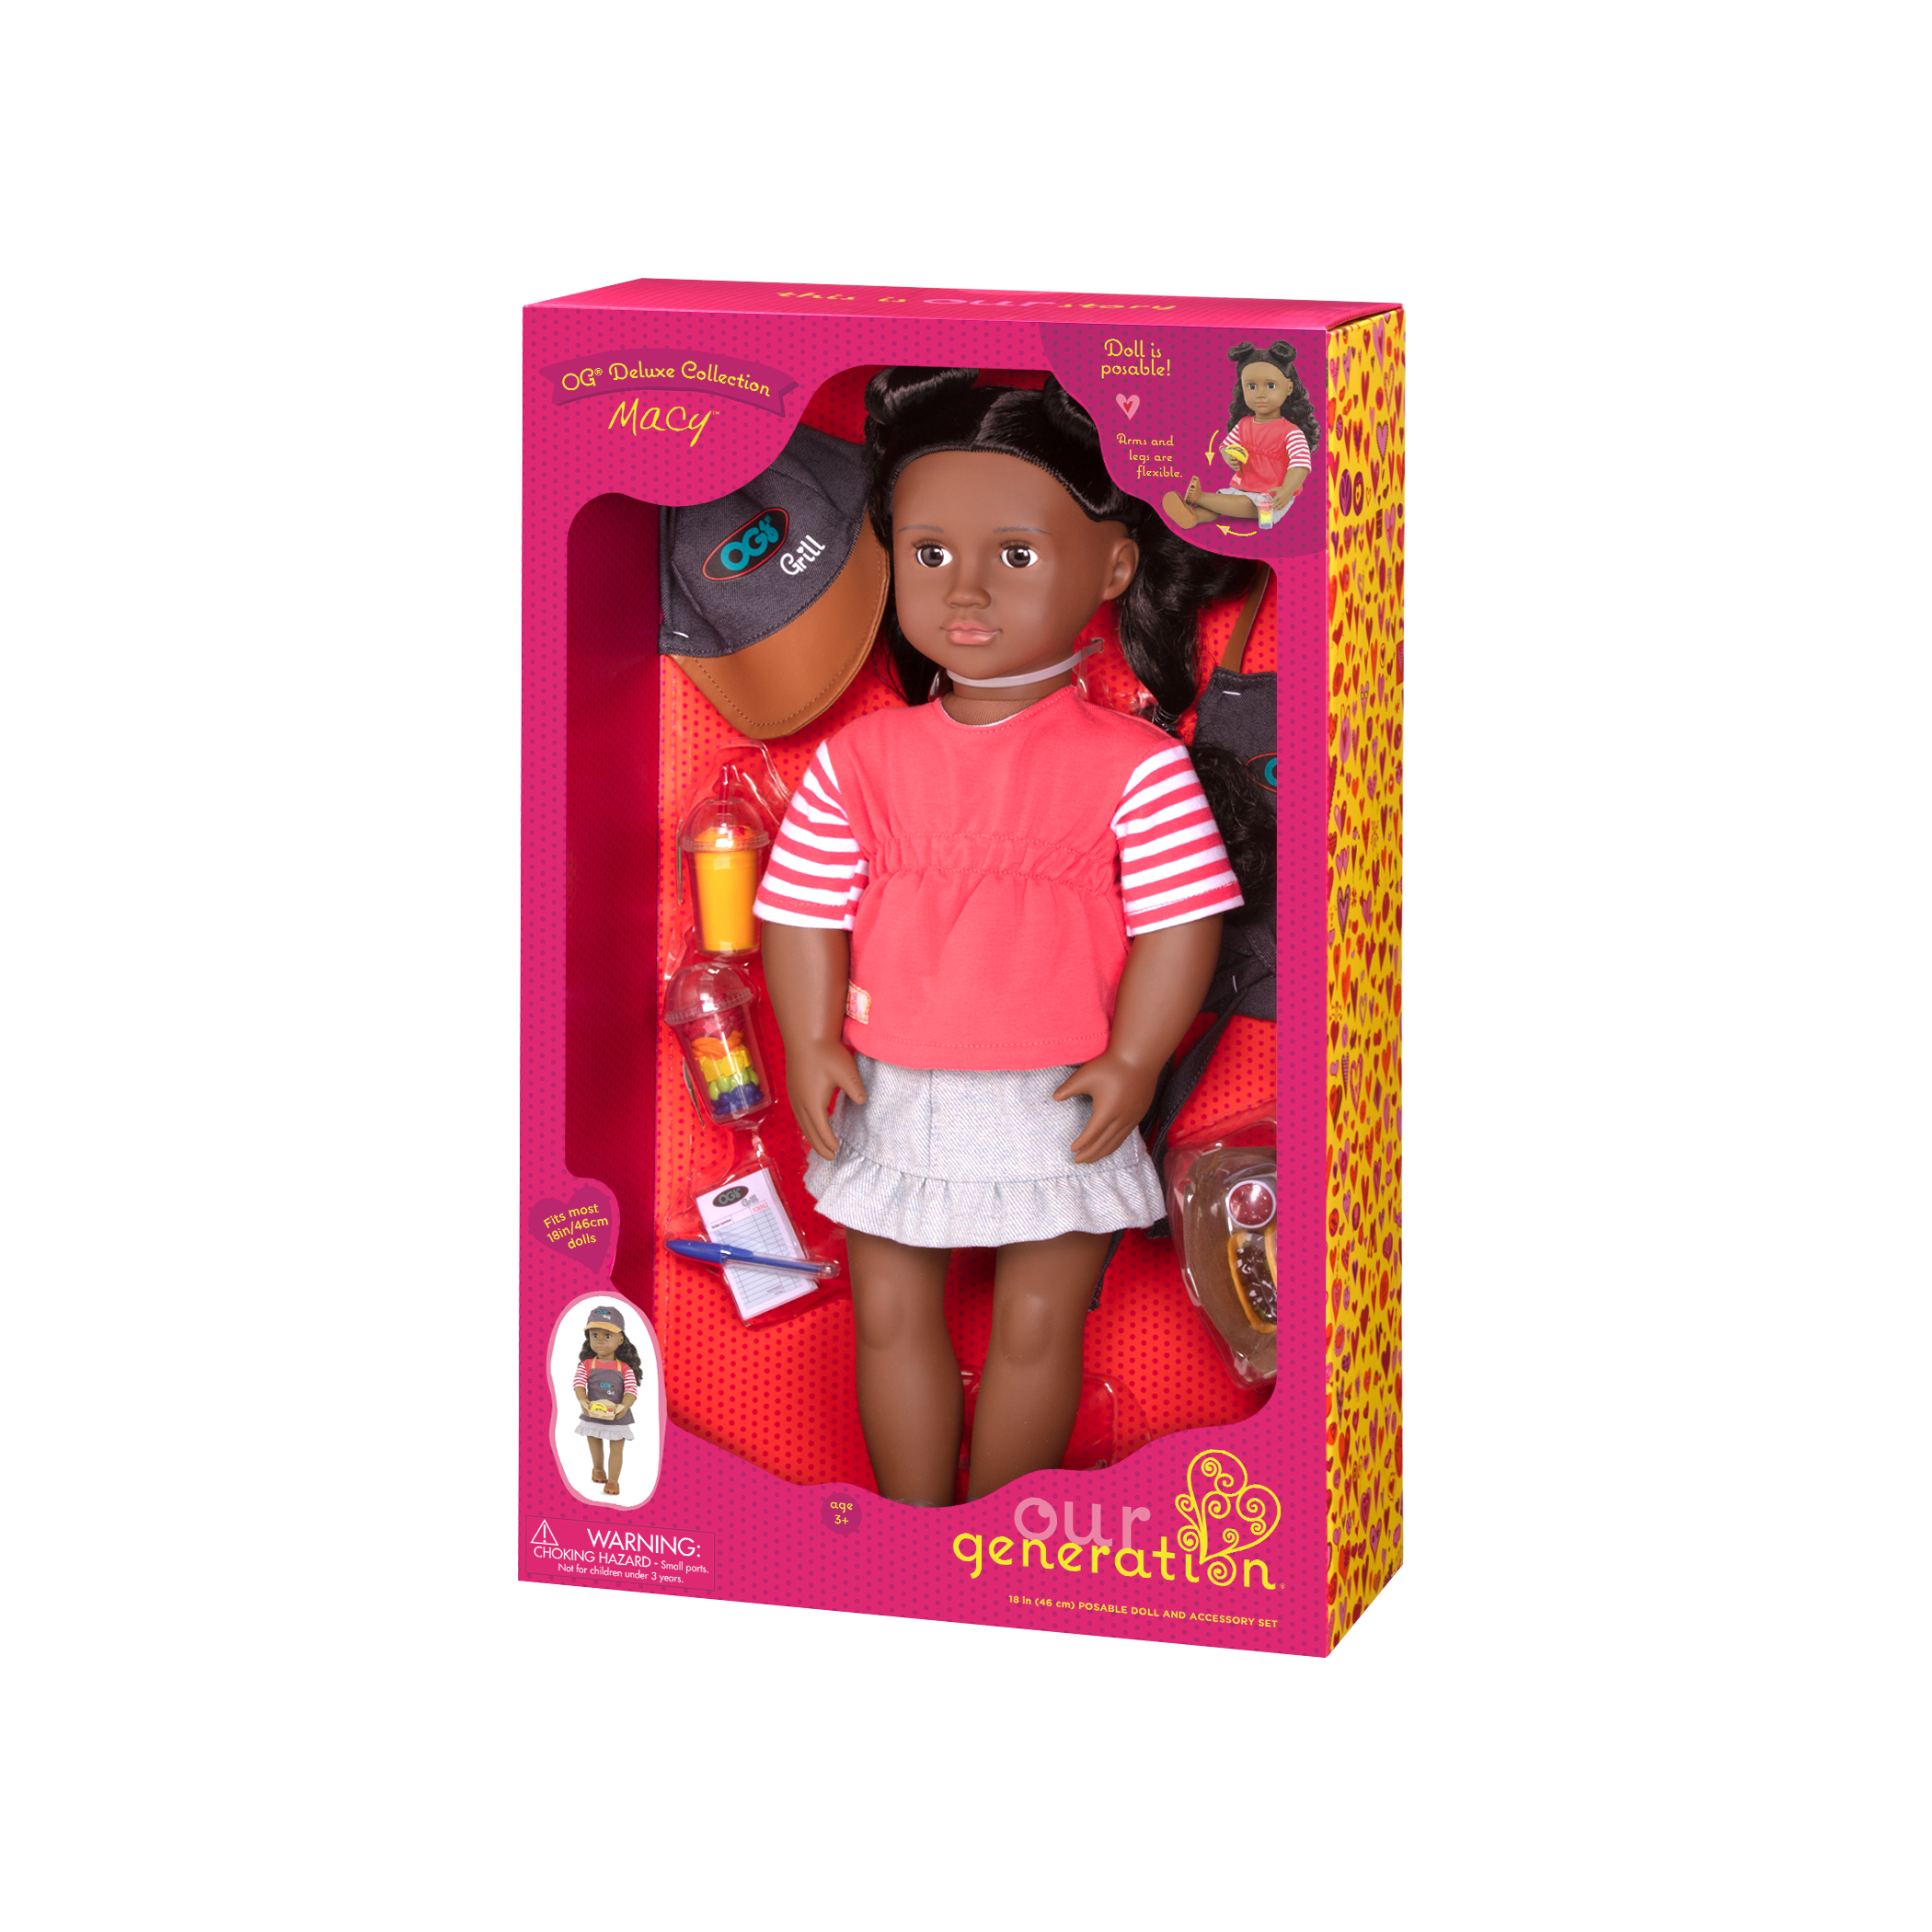 Macy Deluxe Food Truck Doll in packaging